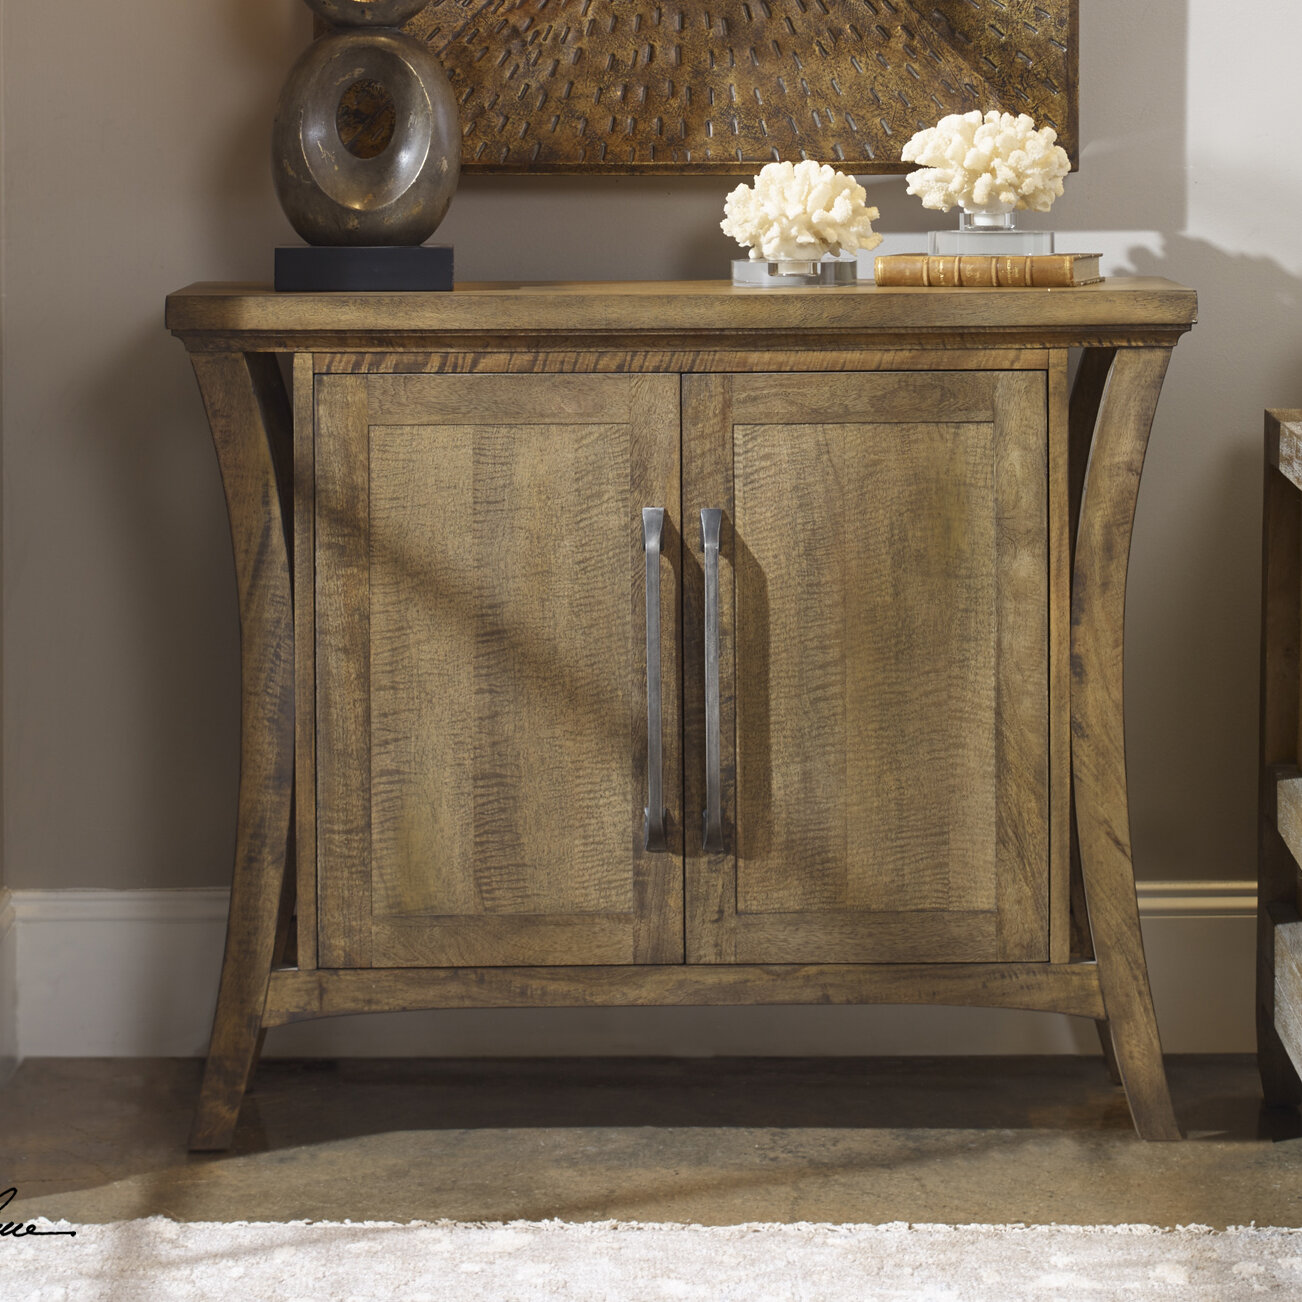 Details About Gracie Oaks Remi Distressed 2 Door Accent Cabinet